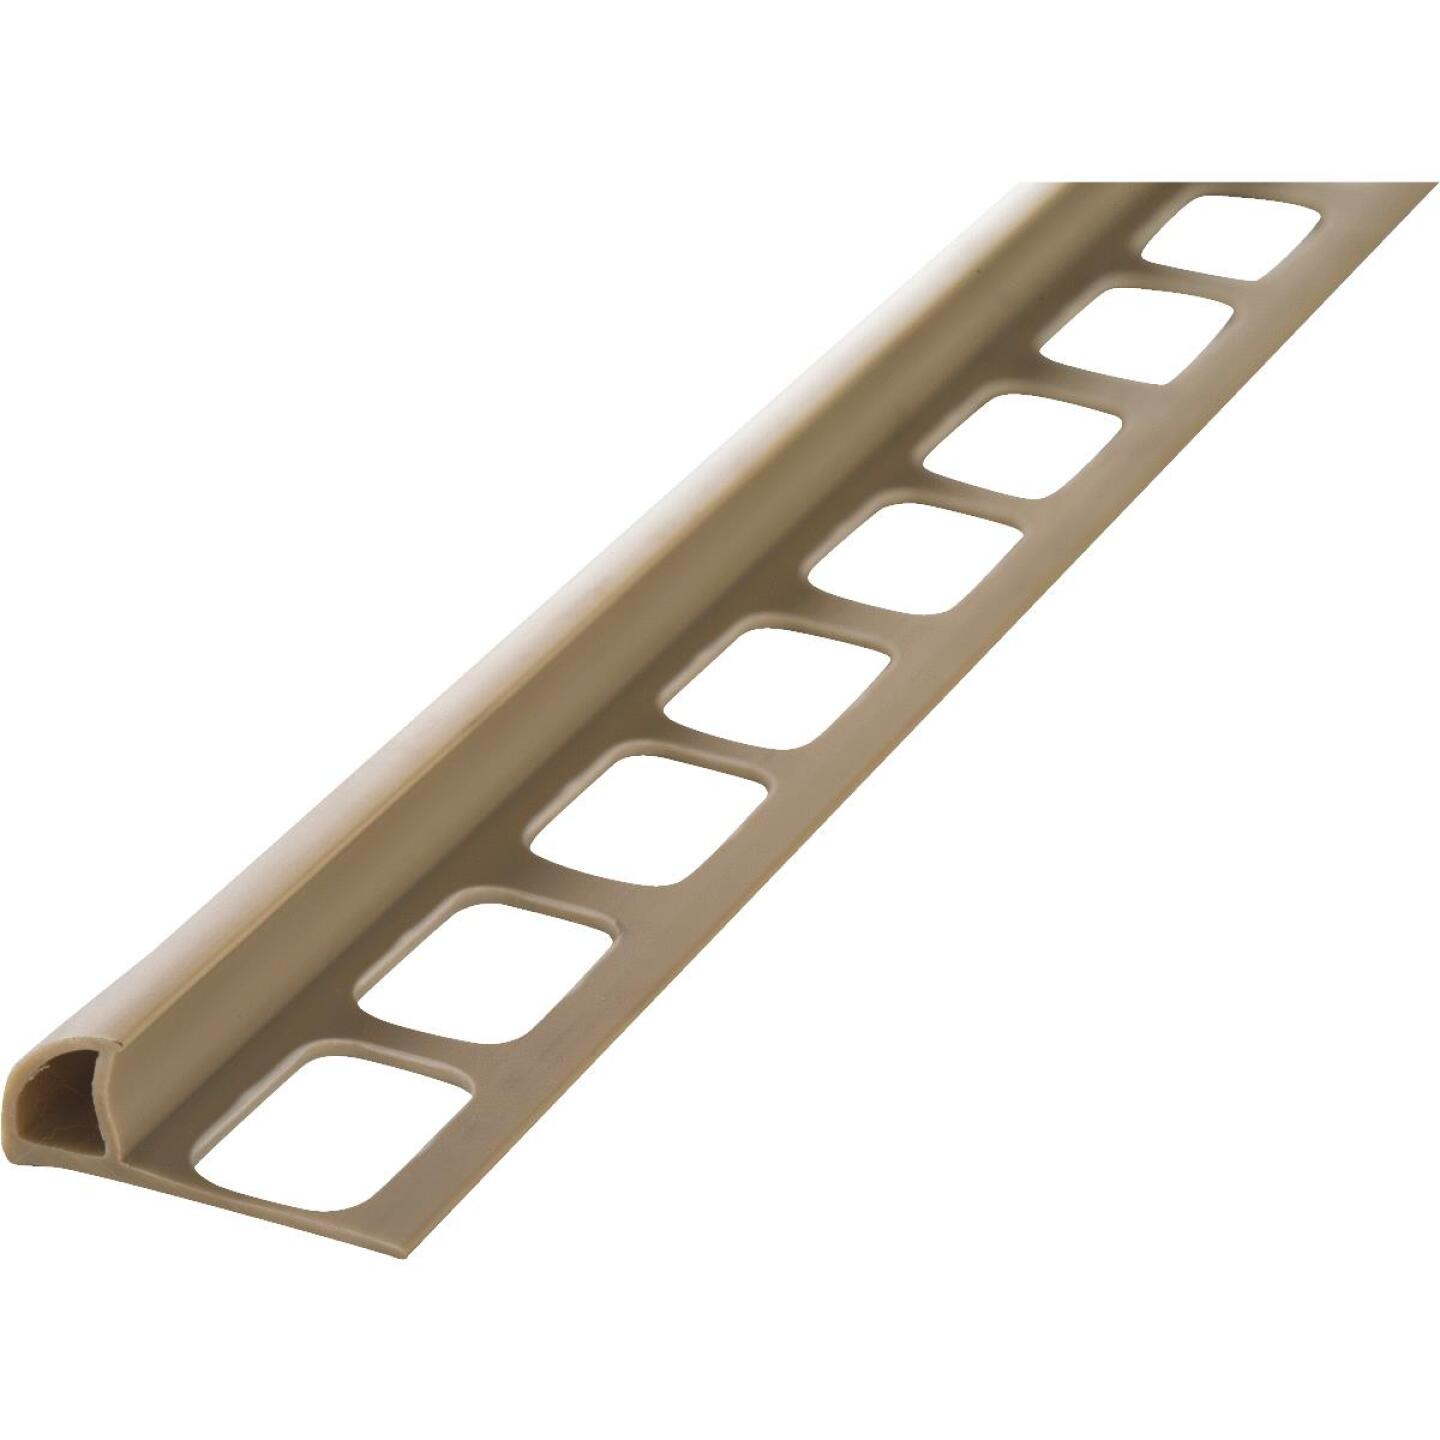 M D Building Products 5/16 In. x 8 Ft. Beige PVC Bullnose Tile Edging Image 1